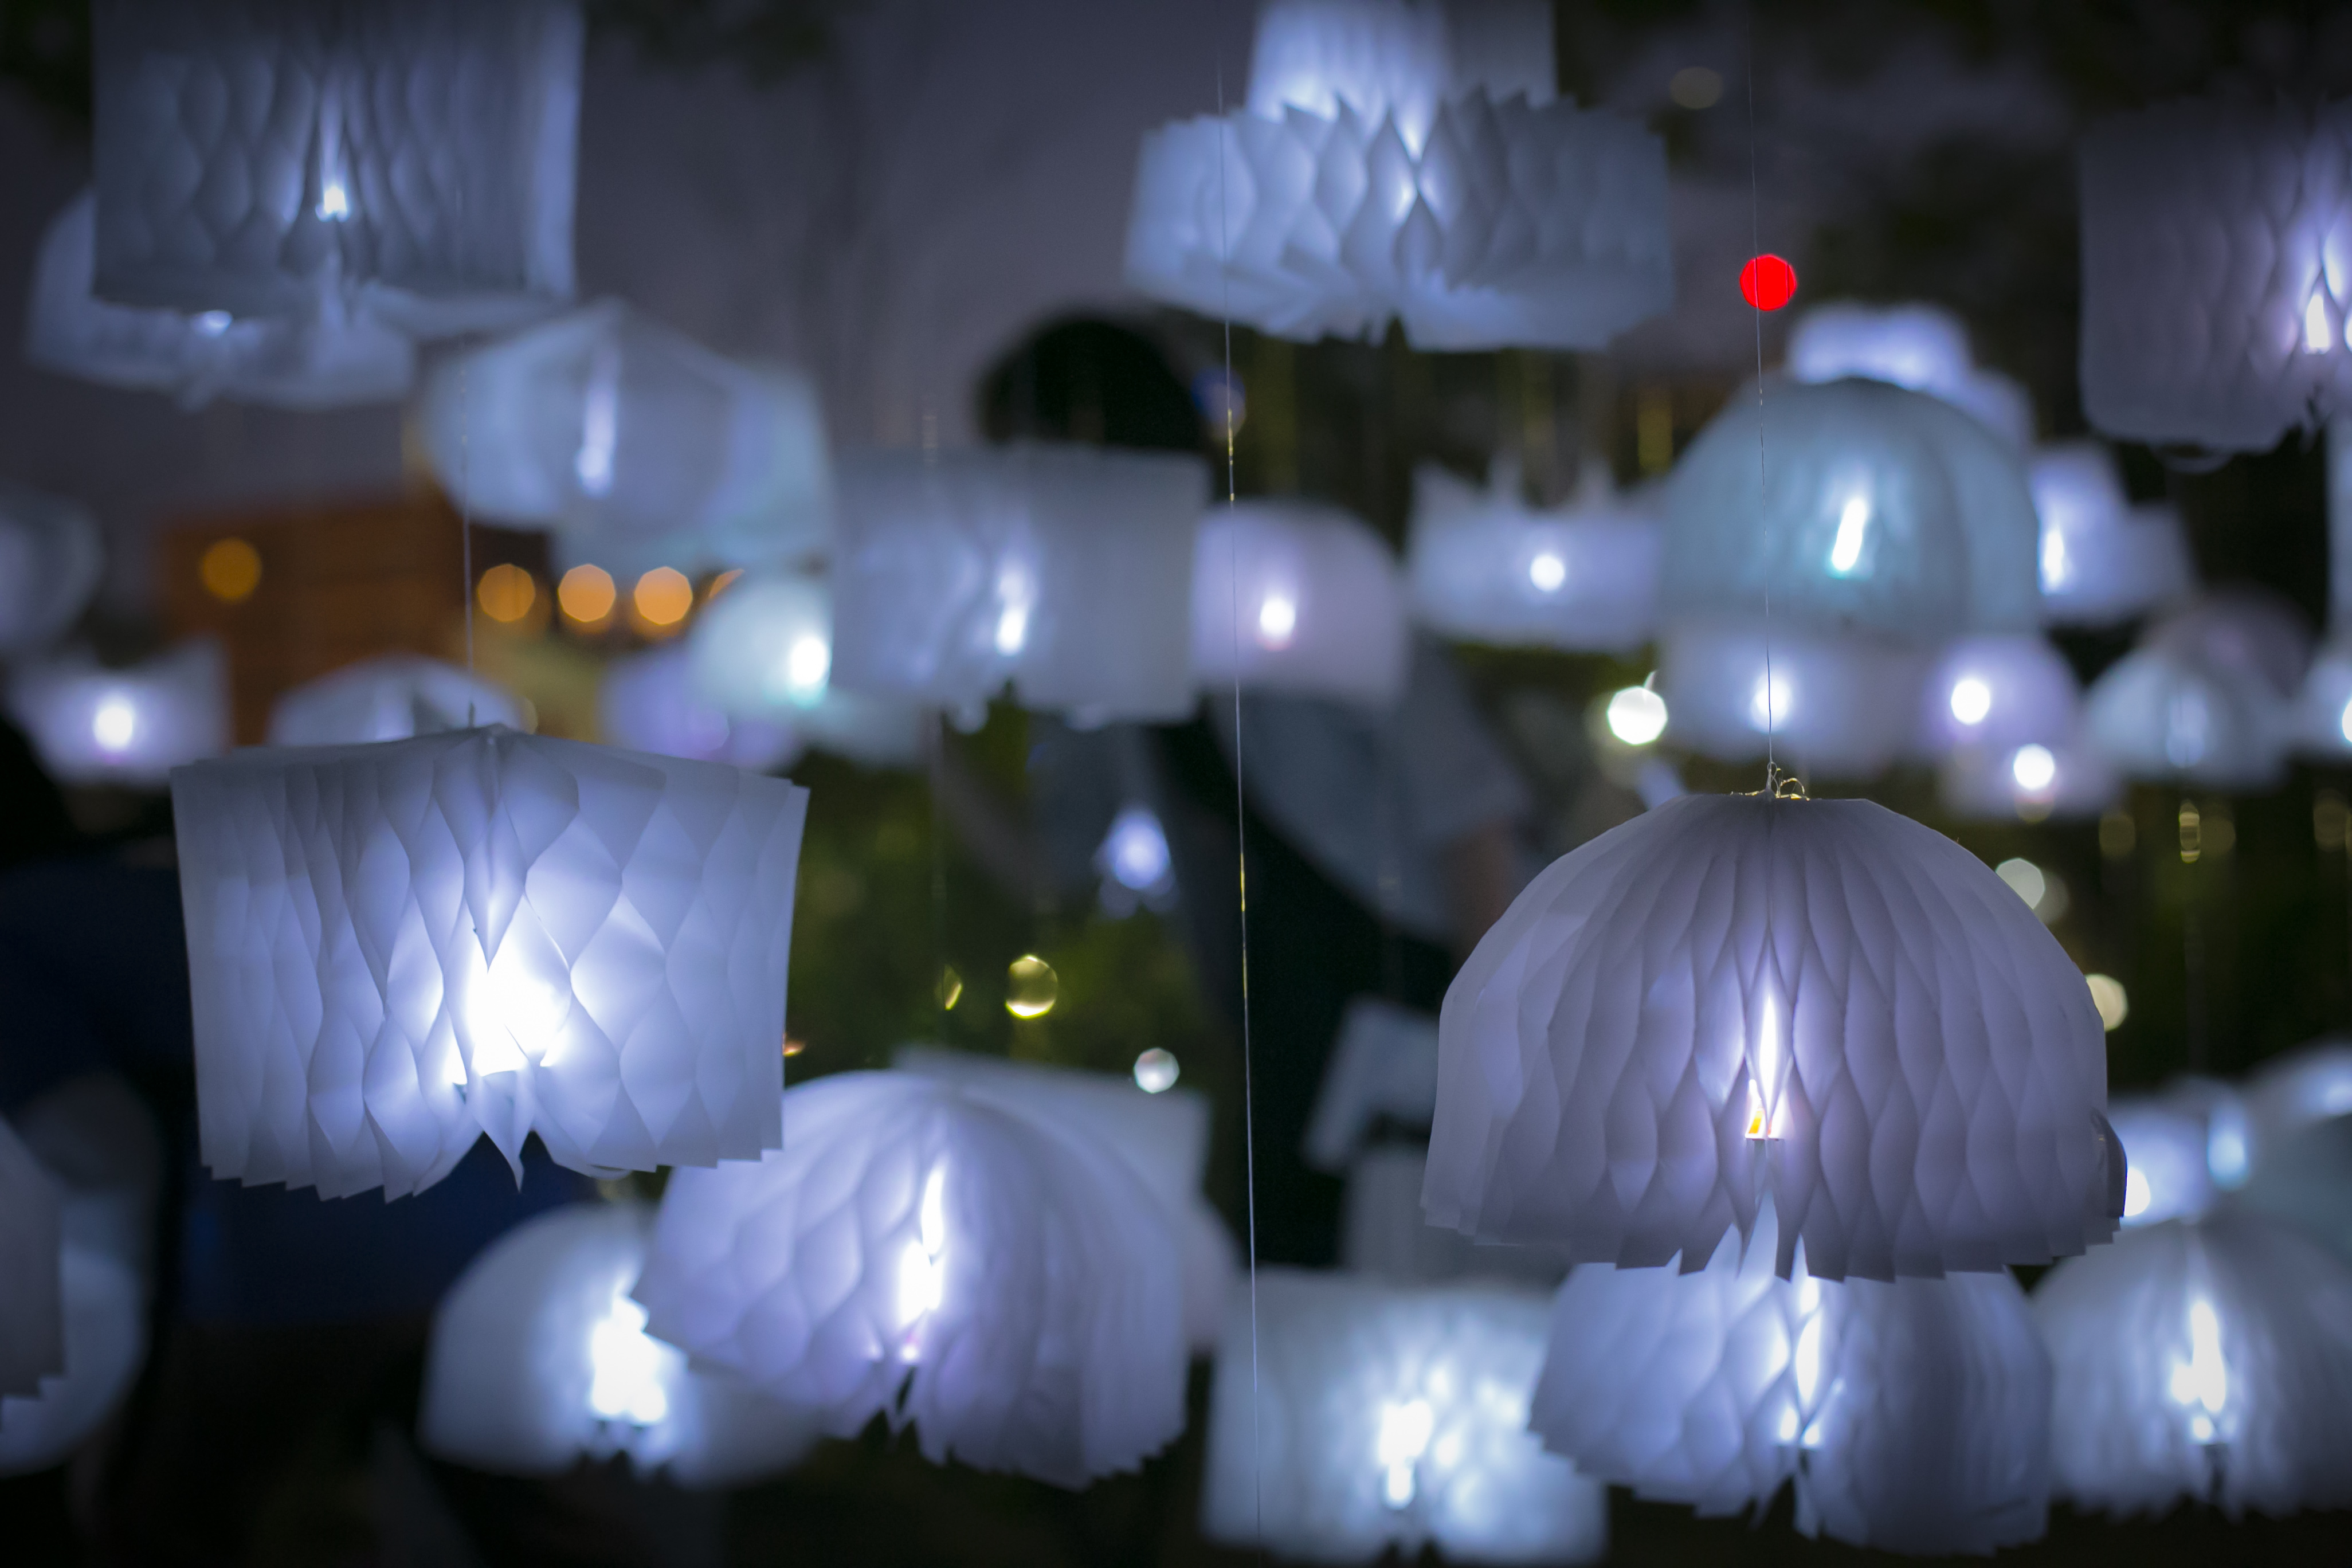 The Promenade with Music and Light Festival 2016